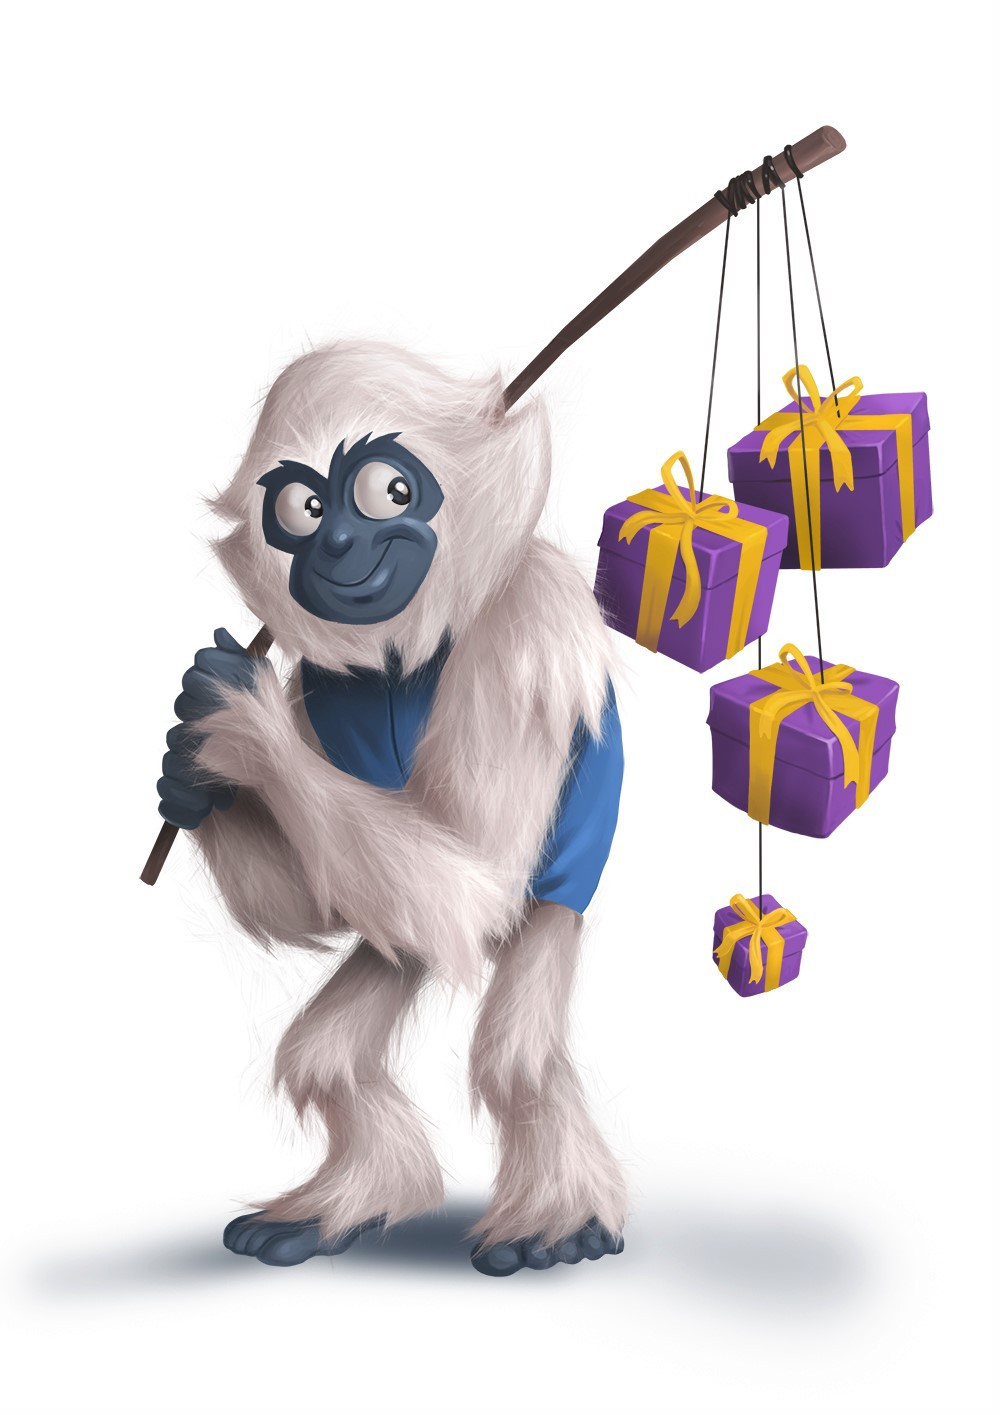 White monkey carrying gift boxes - Digital Painting